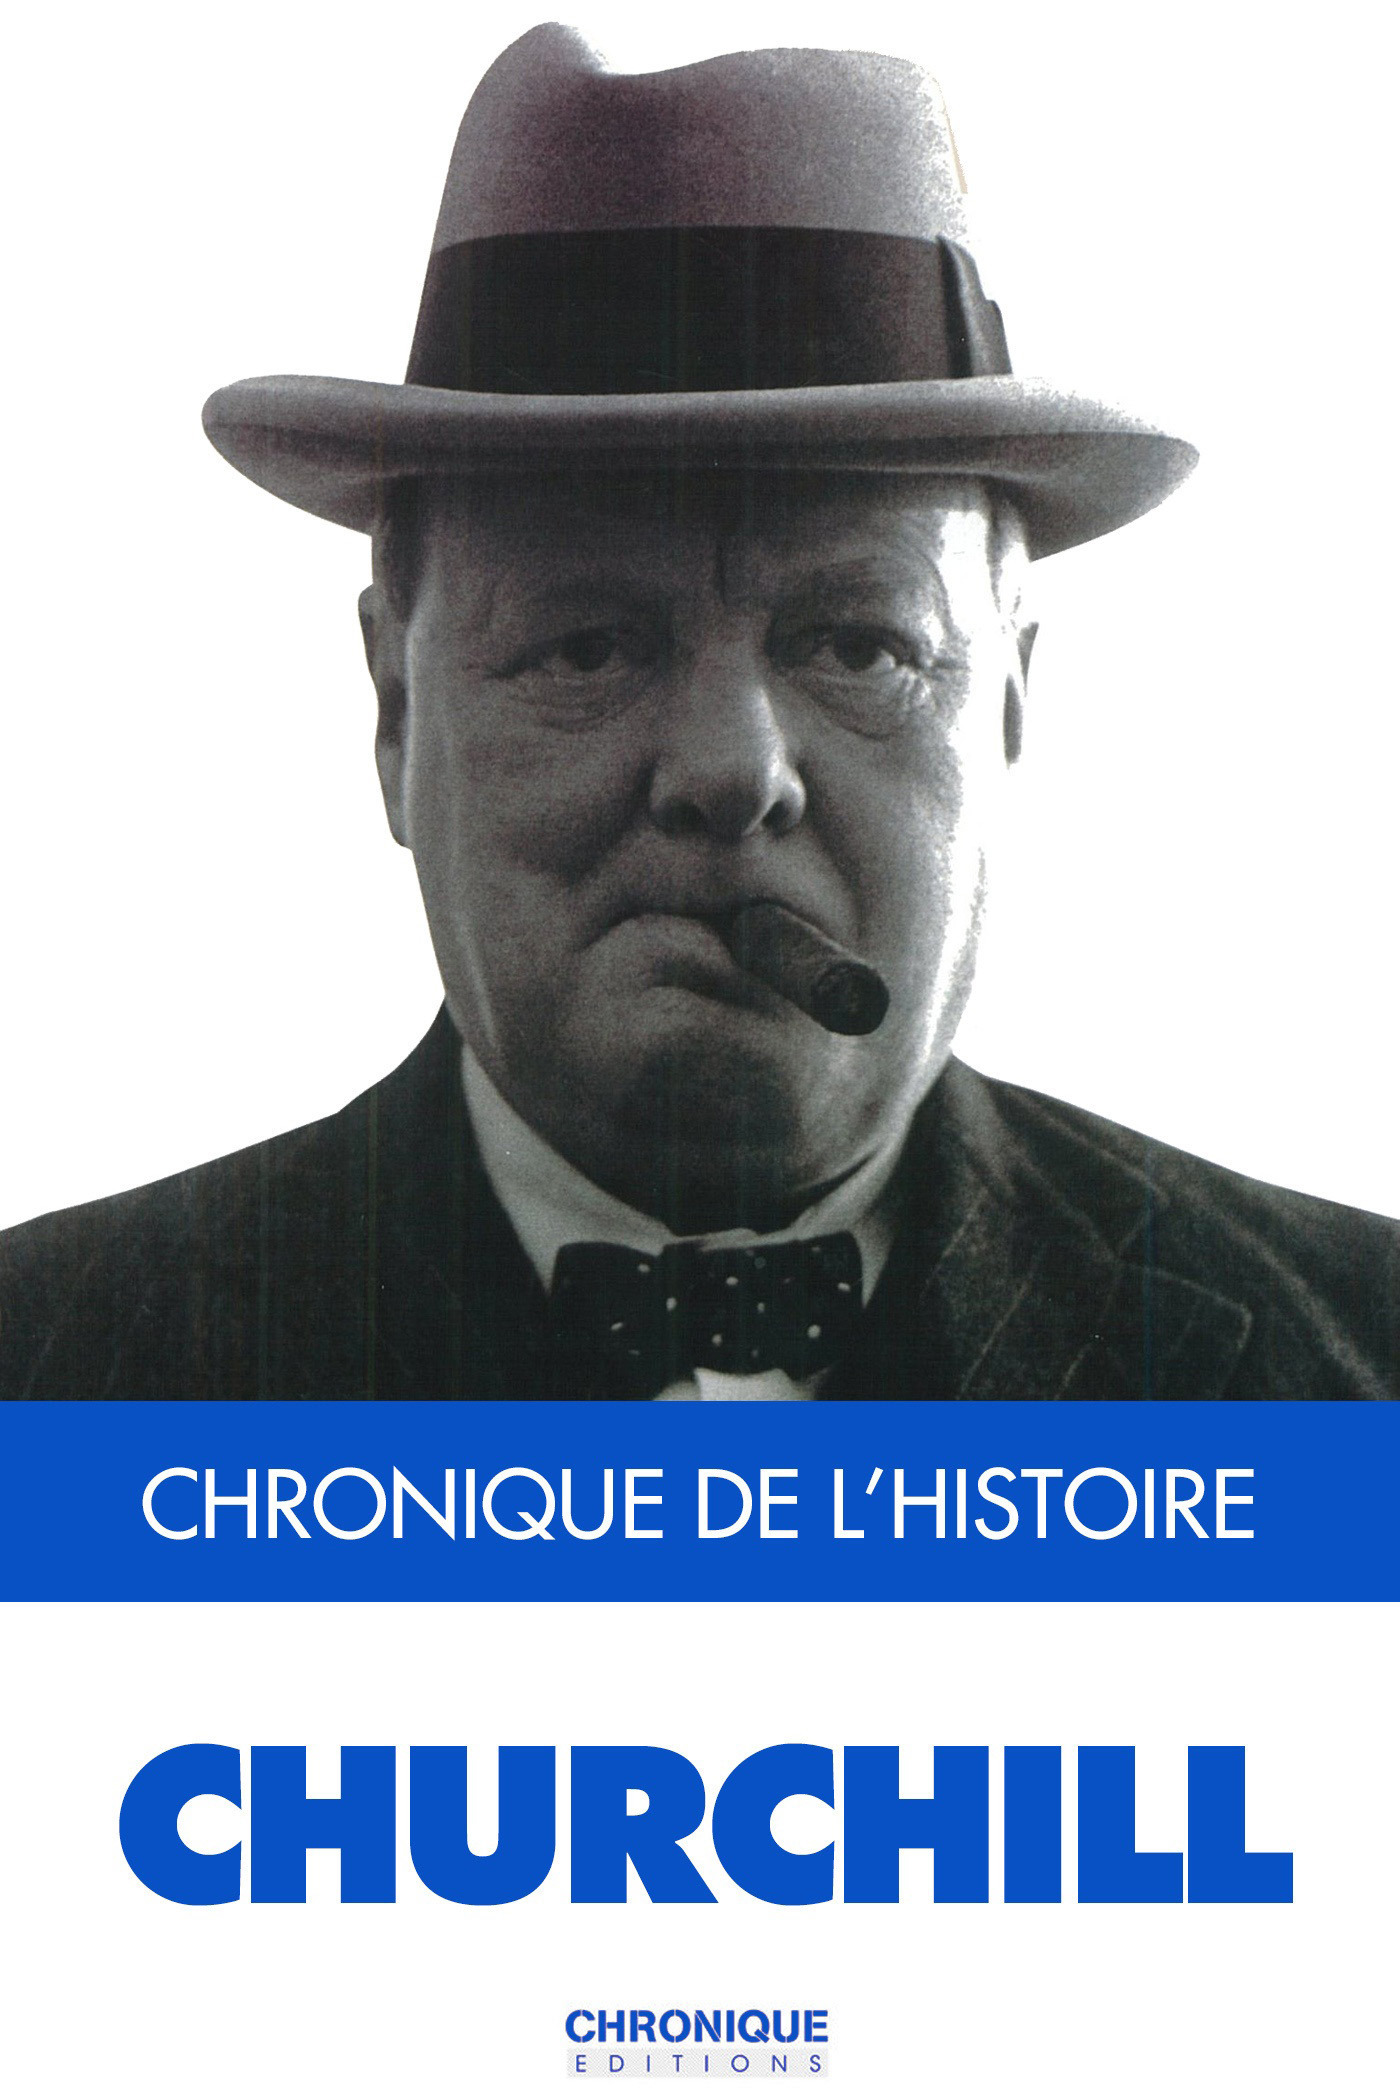 Churchill  - Éditions Chronique  - François Nida